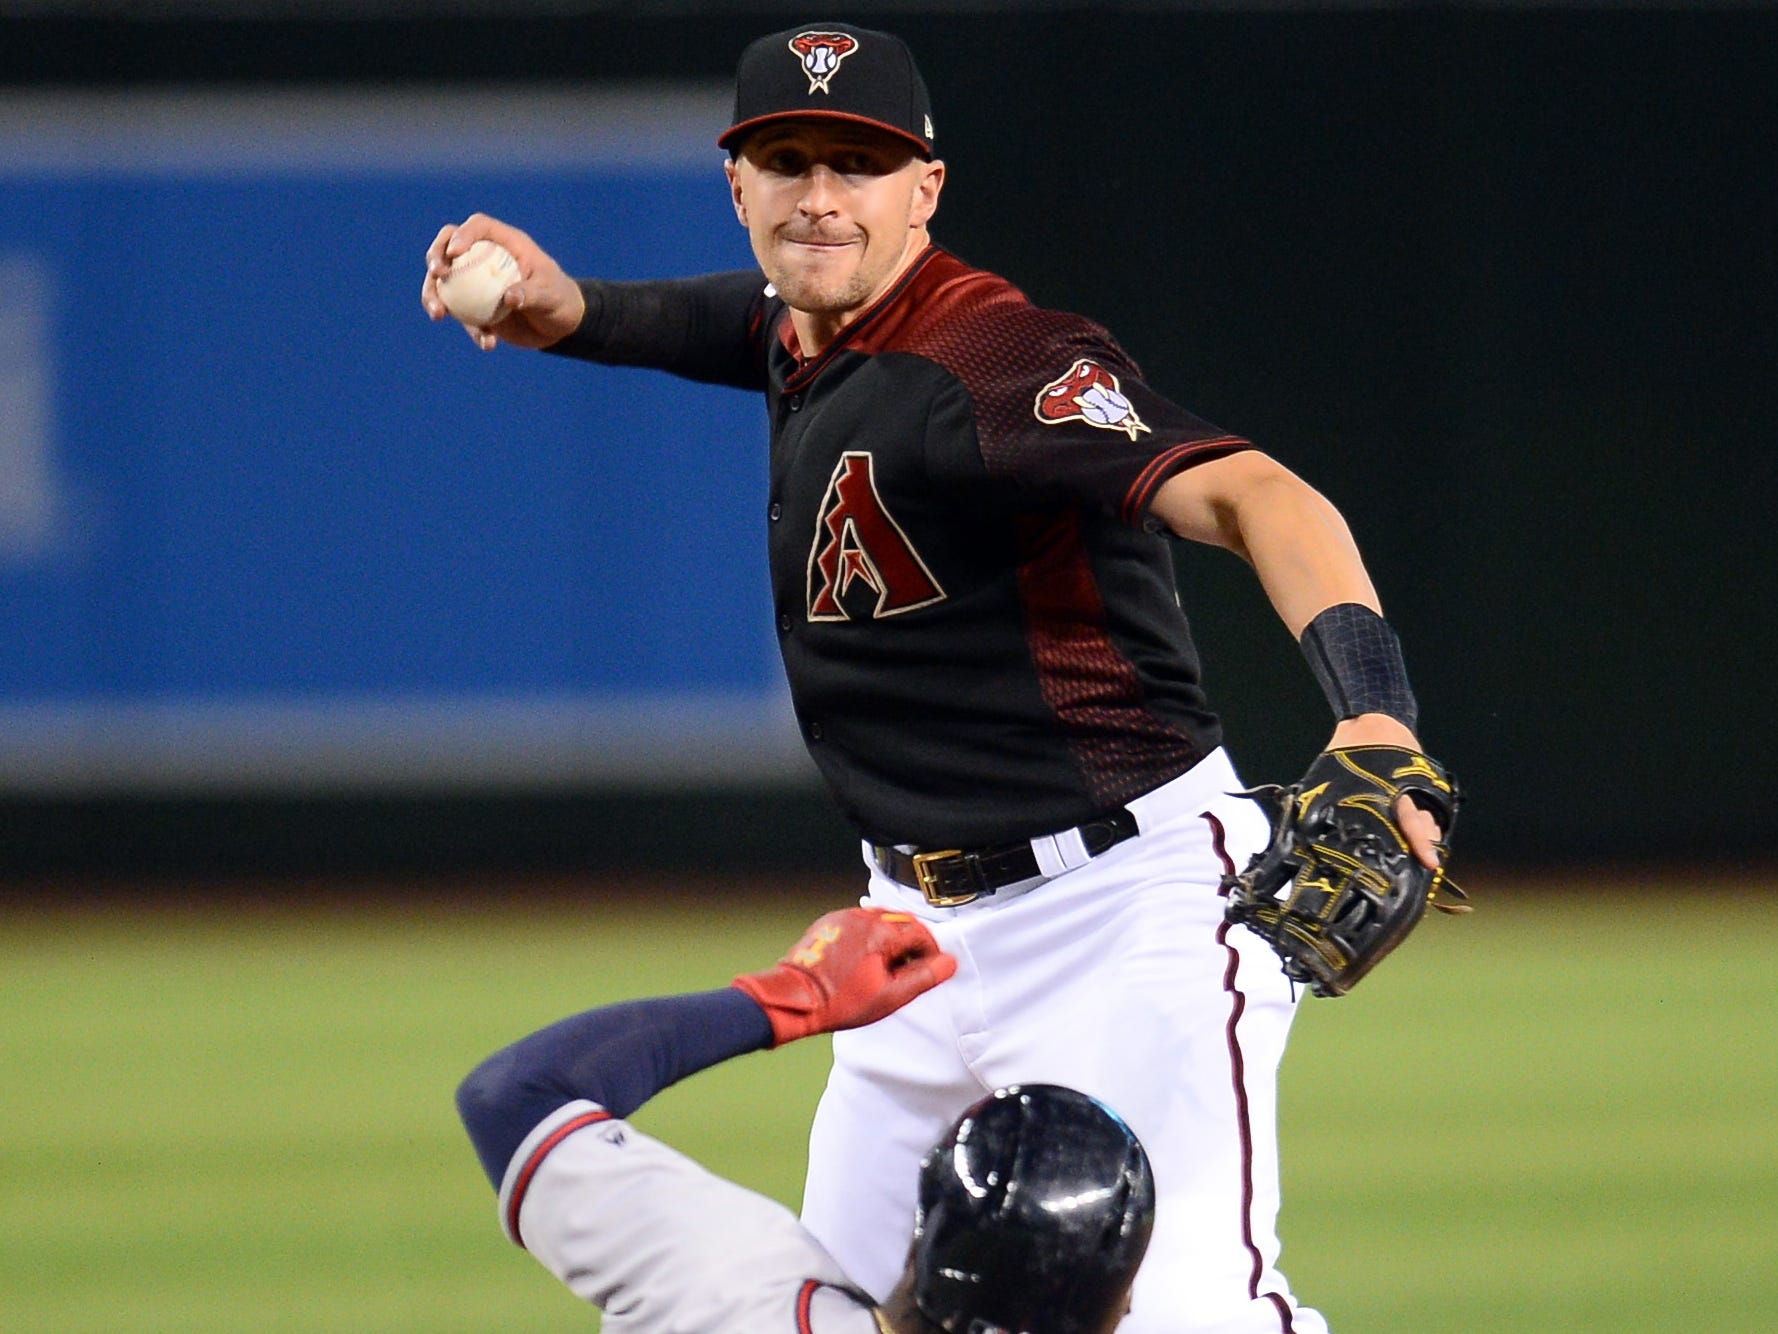 May 11, 2019; Phoenix, AZ, USA; Arizona Diamondbacks shortstop Nick Ahmed (13) throws to first base after forcing out Atlanta Braves second baseman Ozzie Albies (1) at second during the eighth inning at Chase Field.